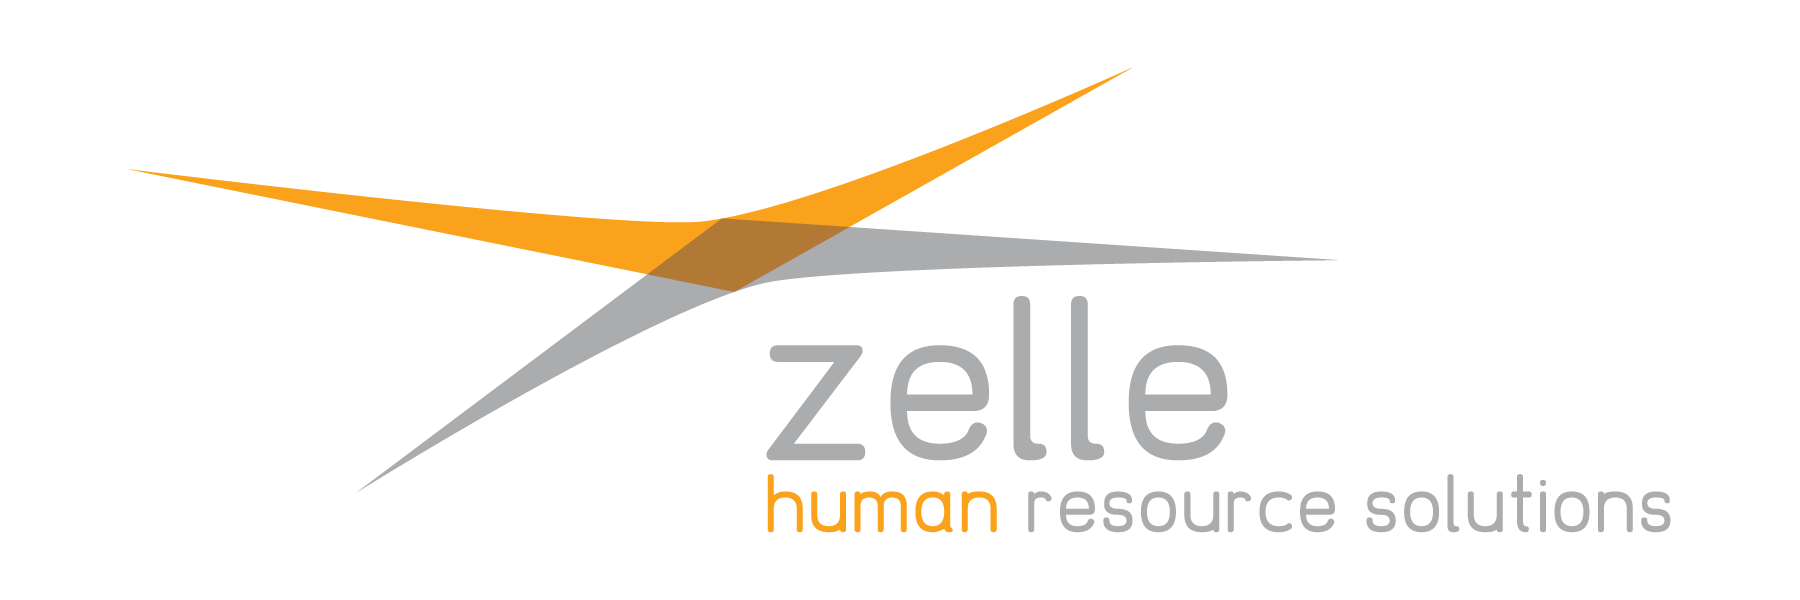 Eagle Sponsor - Zelle HR Solutions - Logo